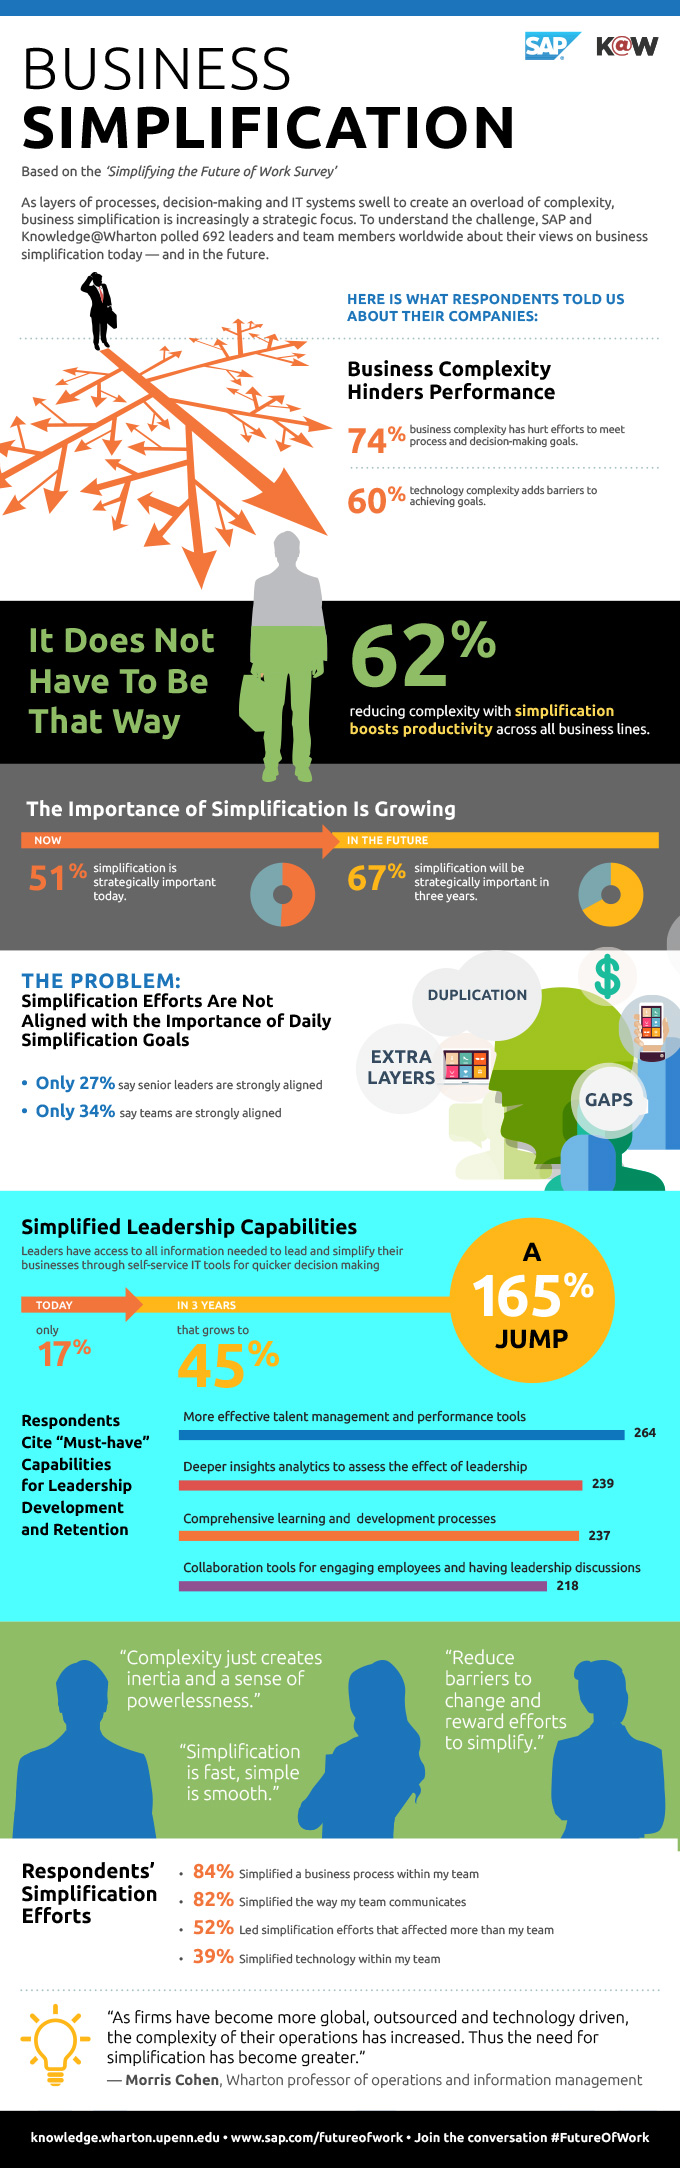 SAP_Business_Simplification_Infographic_Web